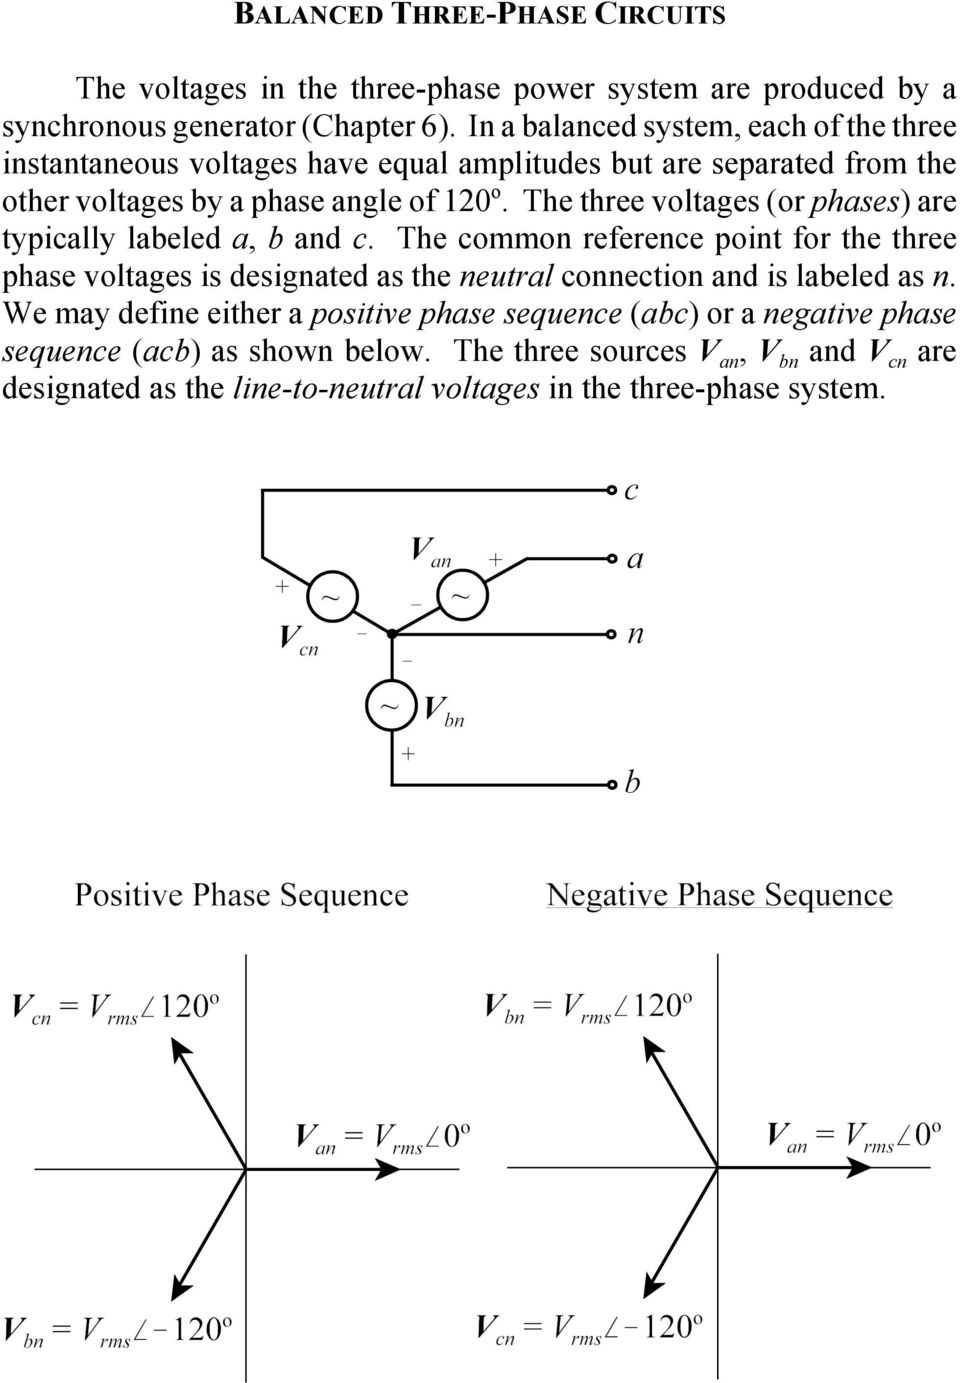 Balanced Three Phase Circuits Pdf The Lines Neutral Earthing And Conductors For Power Voltages Or Phases Are Typically Labeled A B C